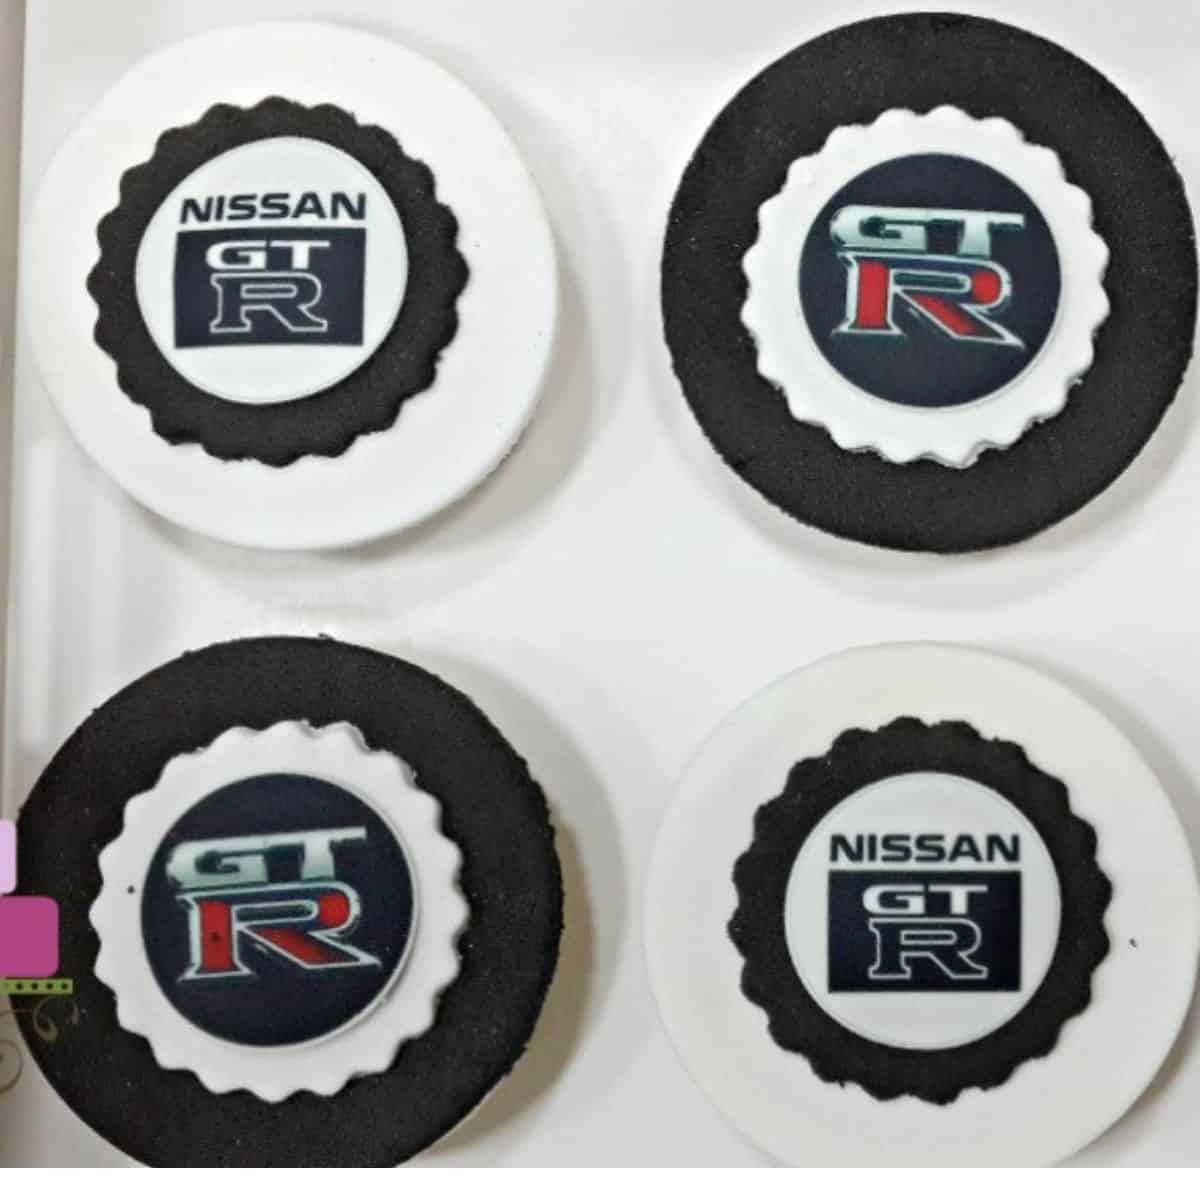 Cupcakes decorated with Nissan GTR edible images